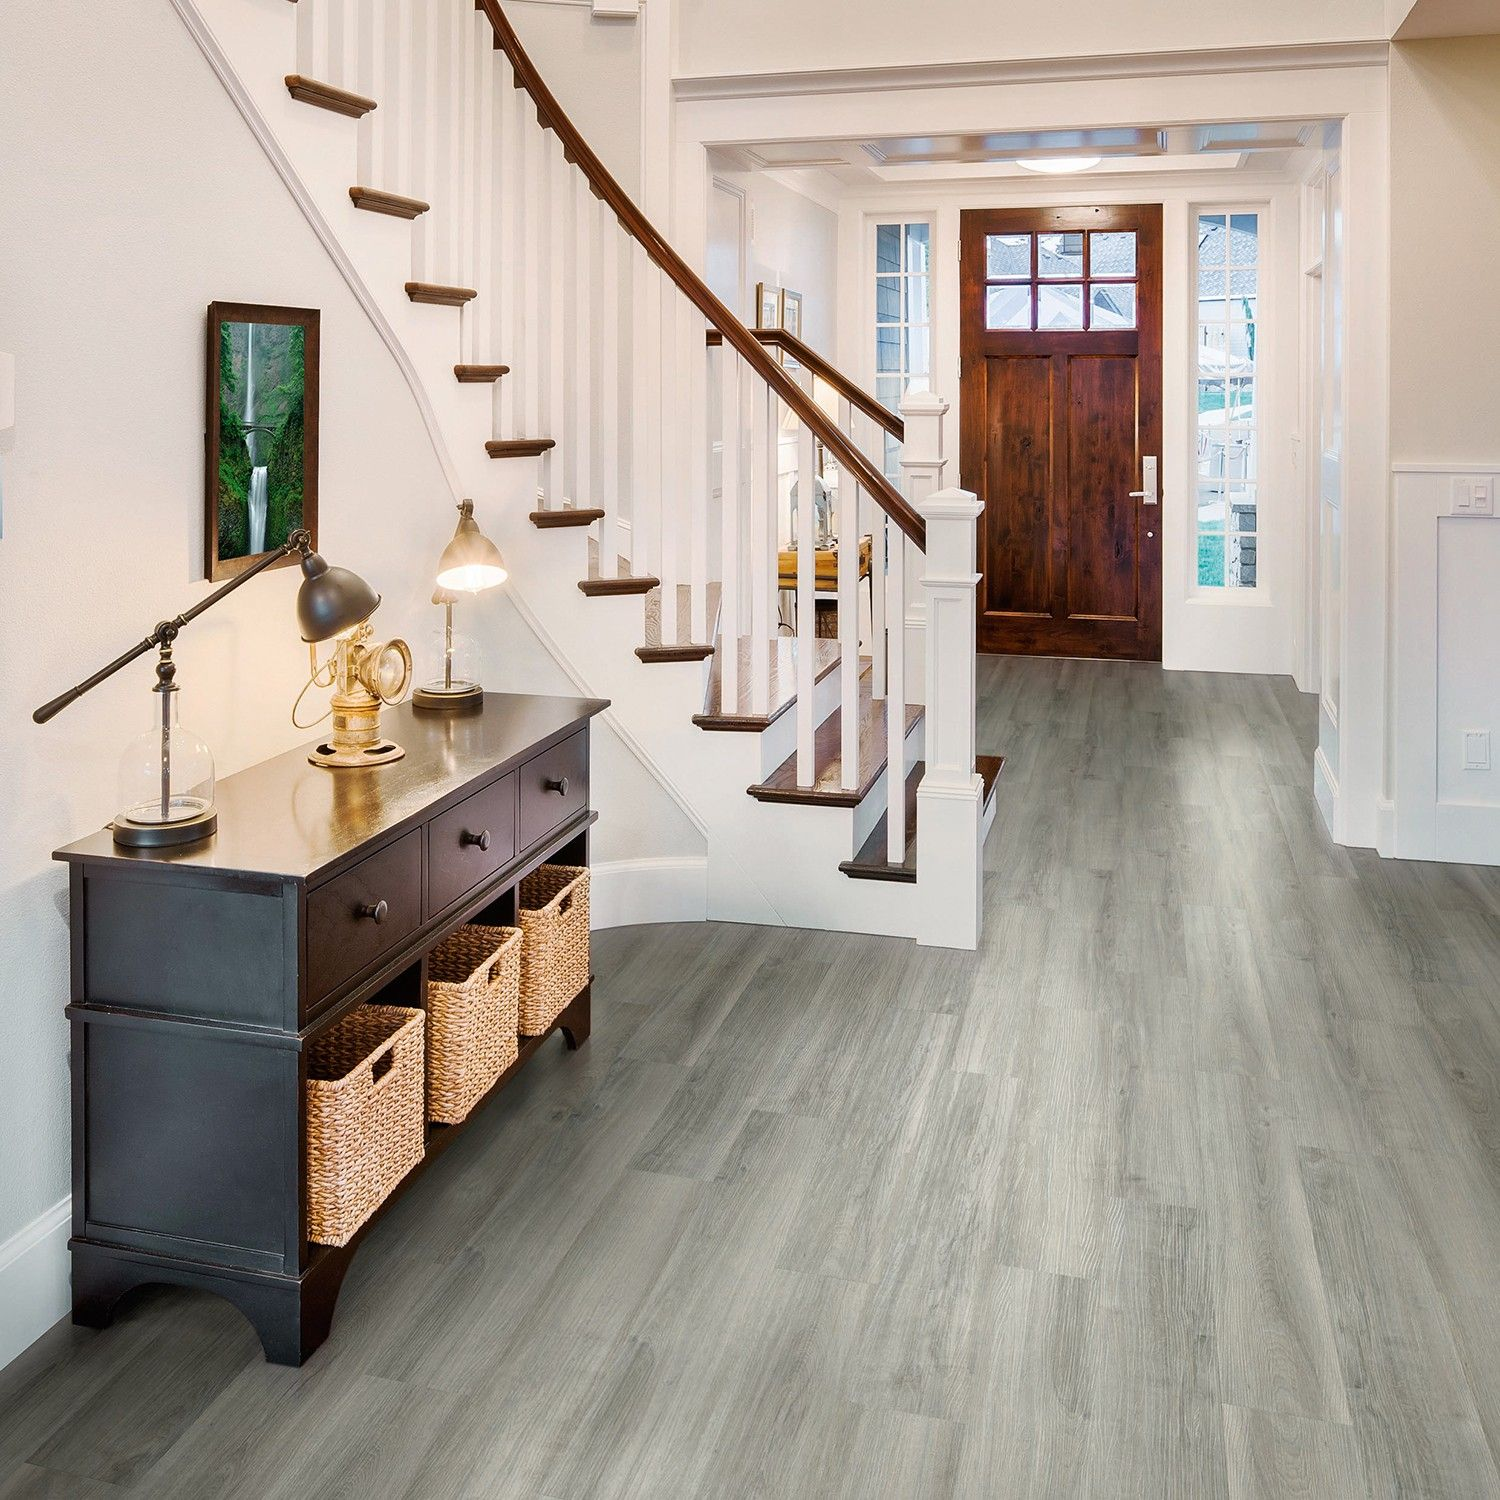 Grey luxury vinyl flooring trends in flooring grey neutral tones grey luxury vinyl flooring trends in flooring grey neutral tones and dailygadgetfo Choice Image